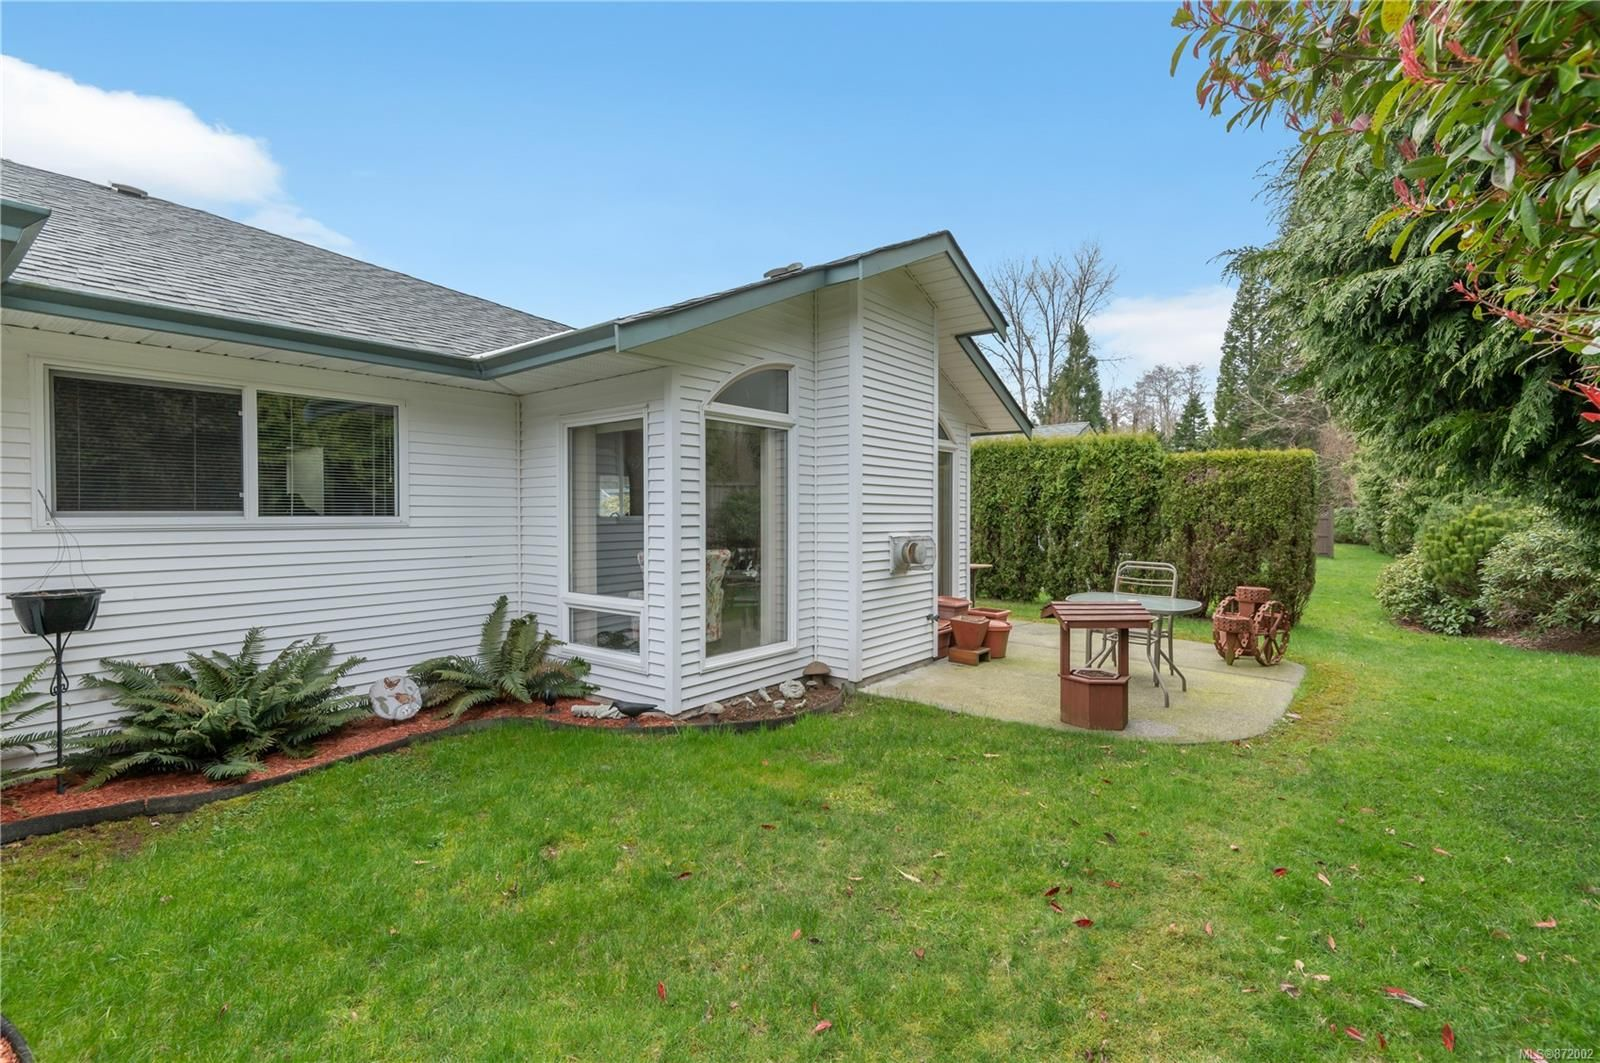 Main Photo: 13 396 Harrogate Rd in : CR Willow Point Row/Townhouse for sale (Campbell River)  : MLS®# 872002